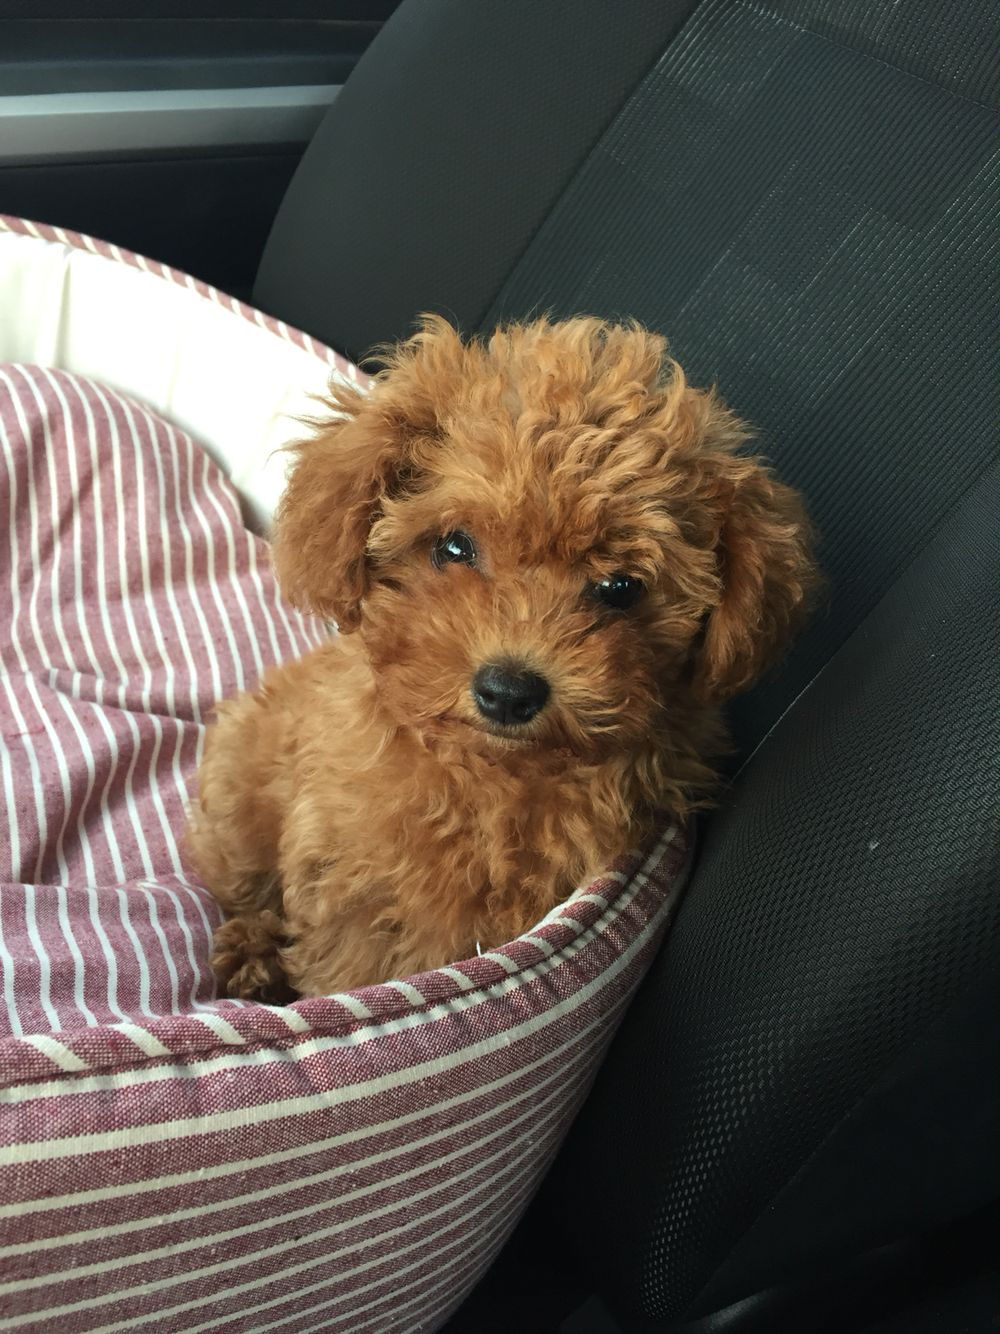 Platinum tea cup poodles for sale dog breeds picture - Mocha The Red Poodle Micro Toy